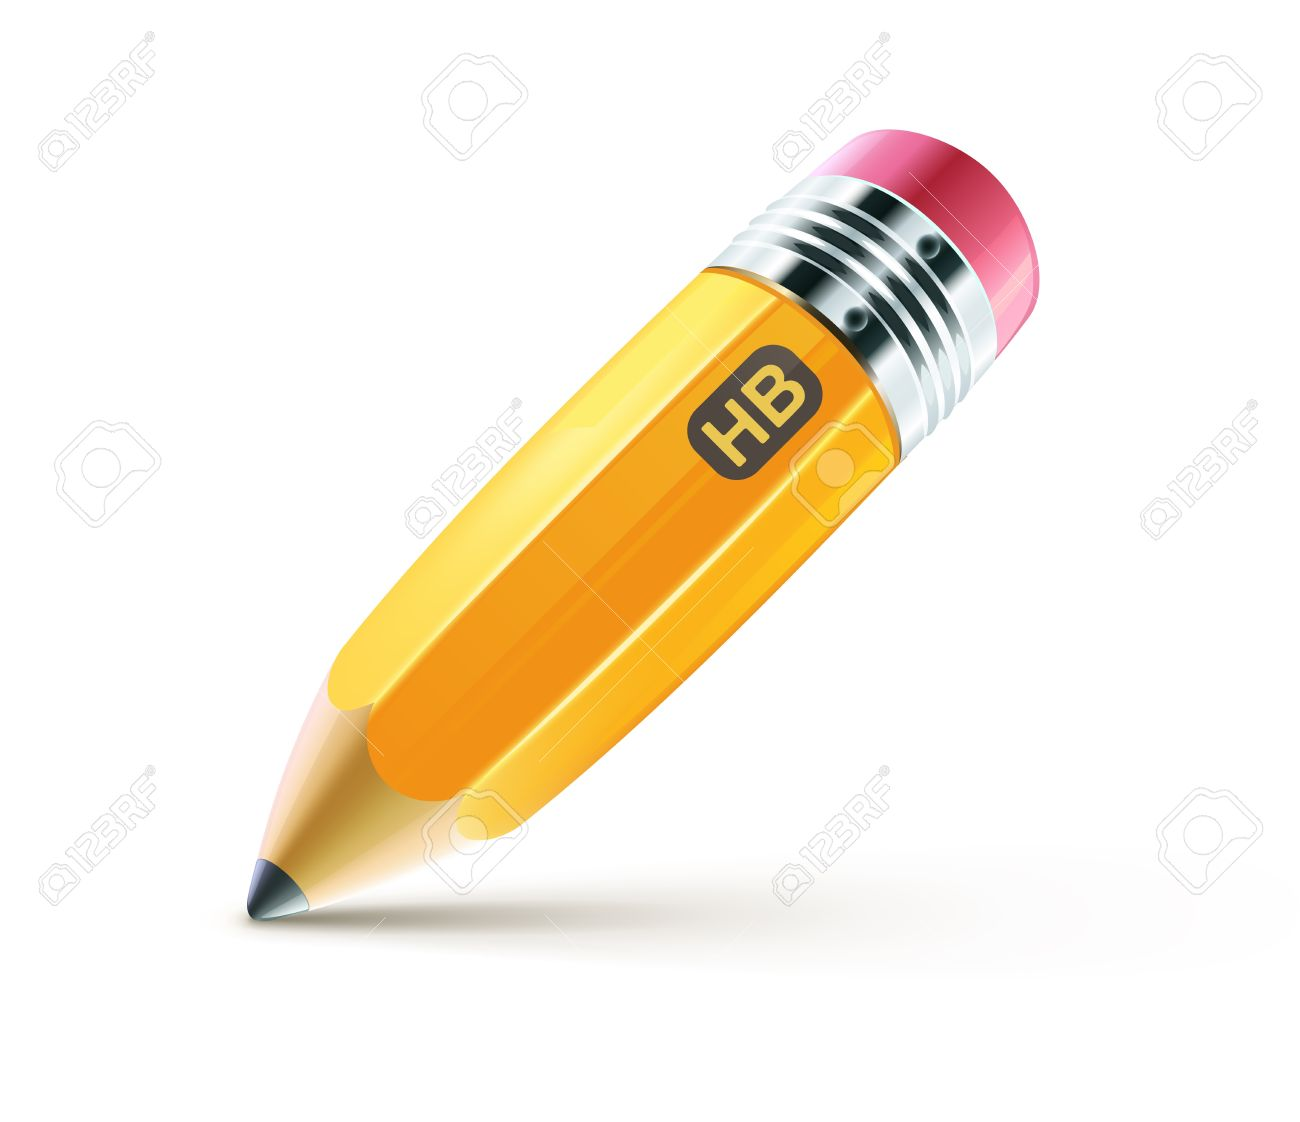 14,318 Eraser Pencil Stock Vector Illustration And Royalty Free.